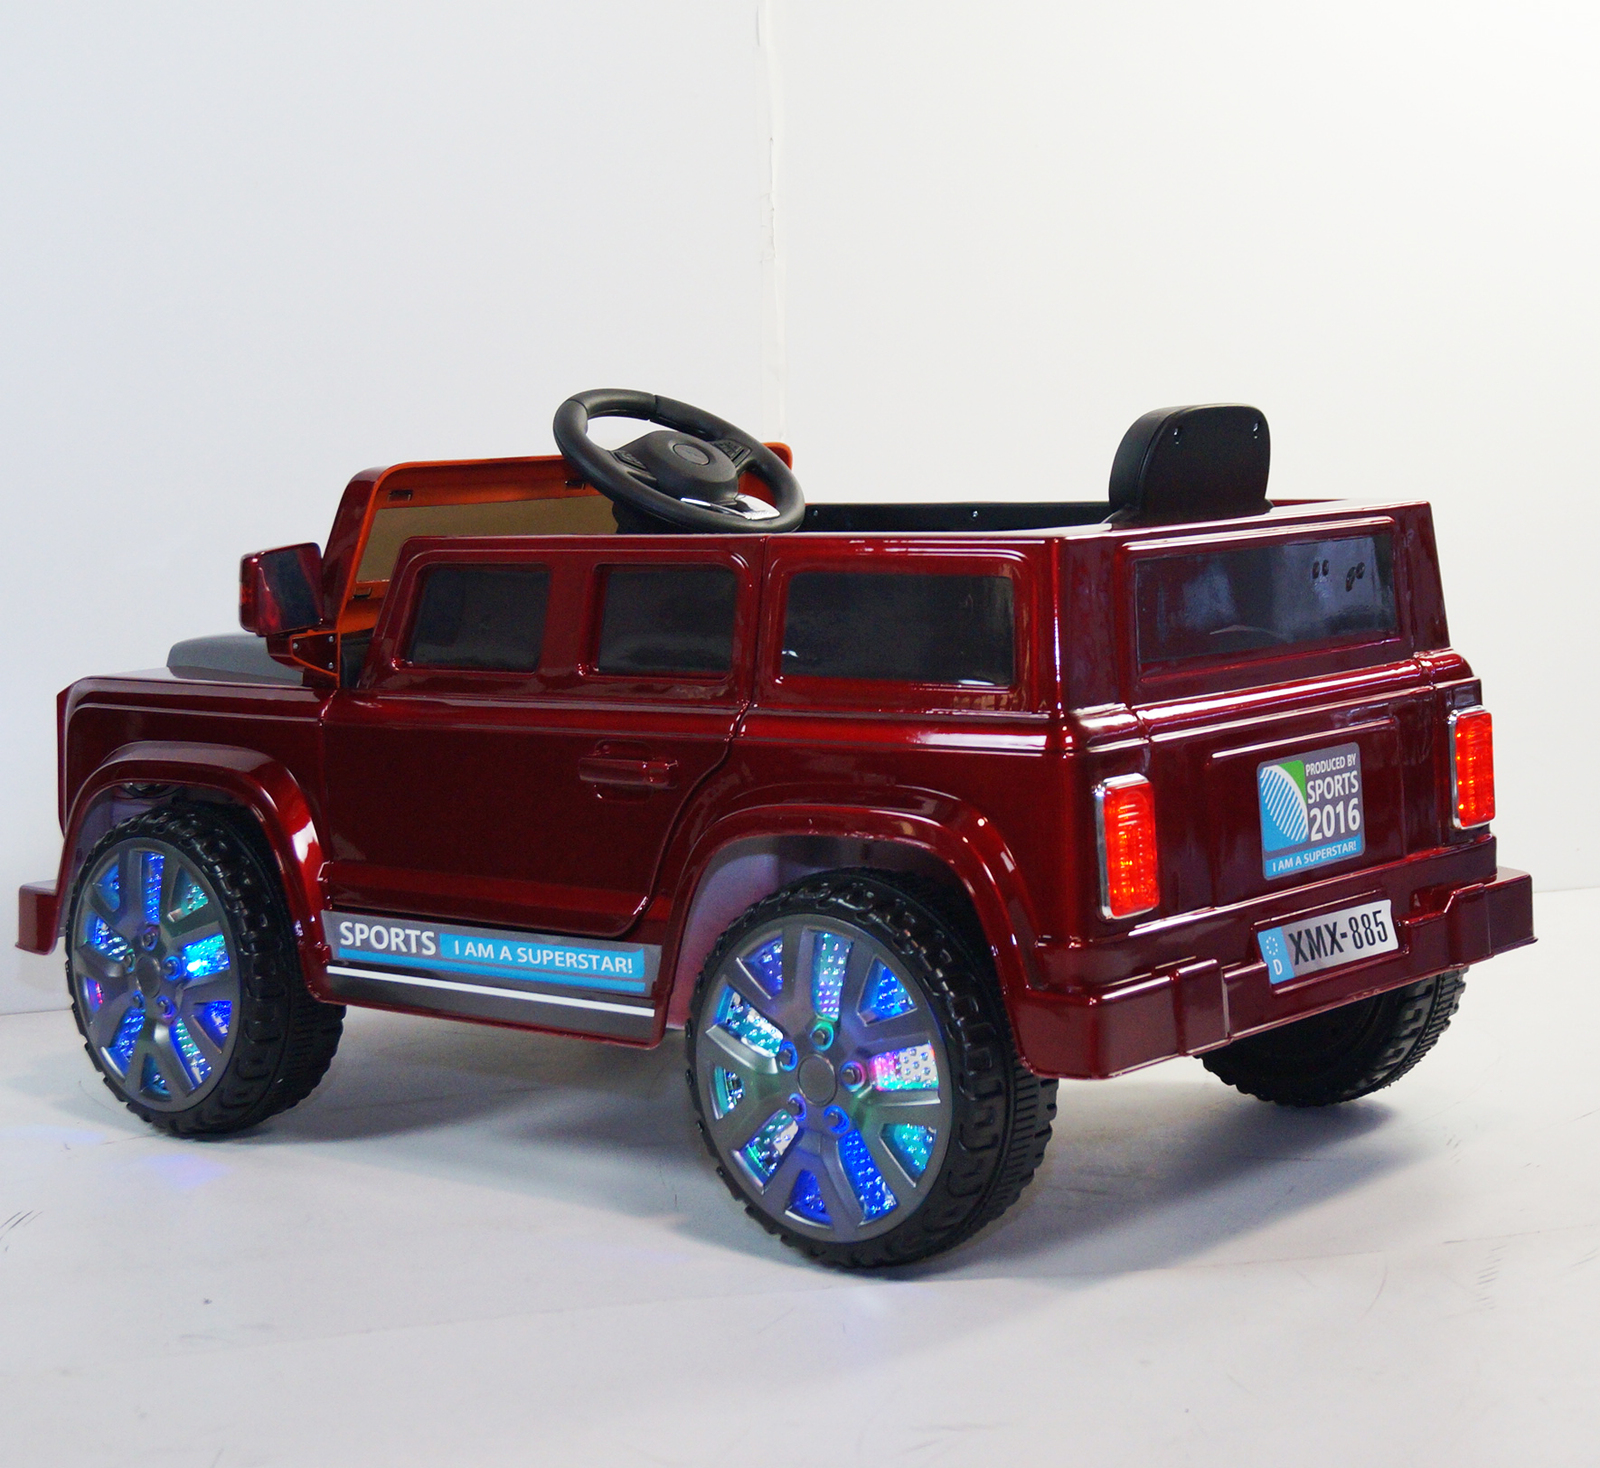 led wheel edition kids land rover defender style kids ride. Black Bedroom Furniture Sets. Home Design Ideas